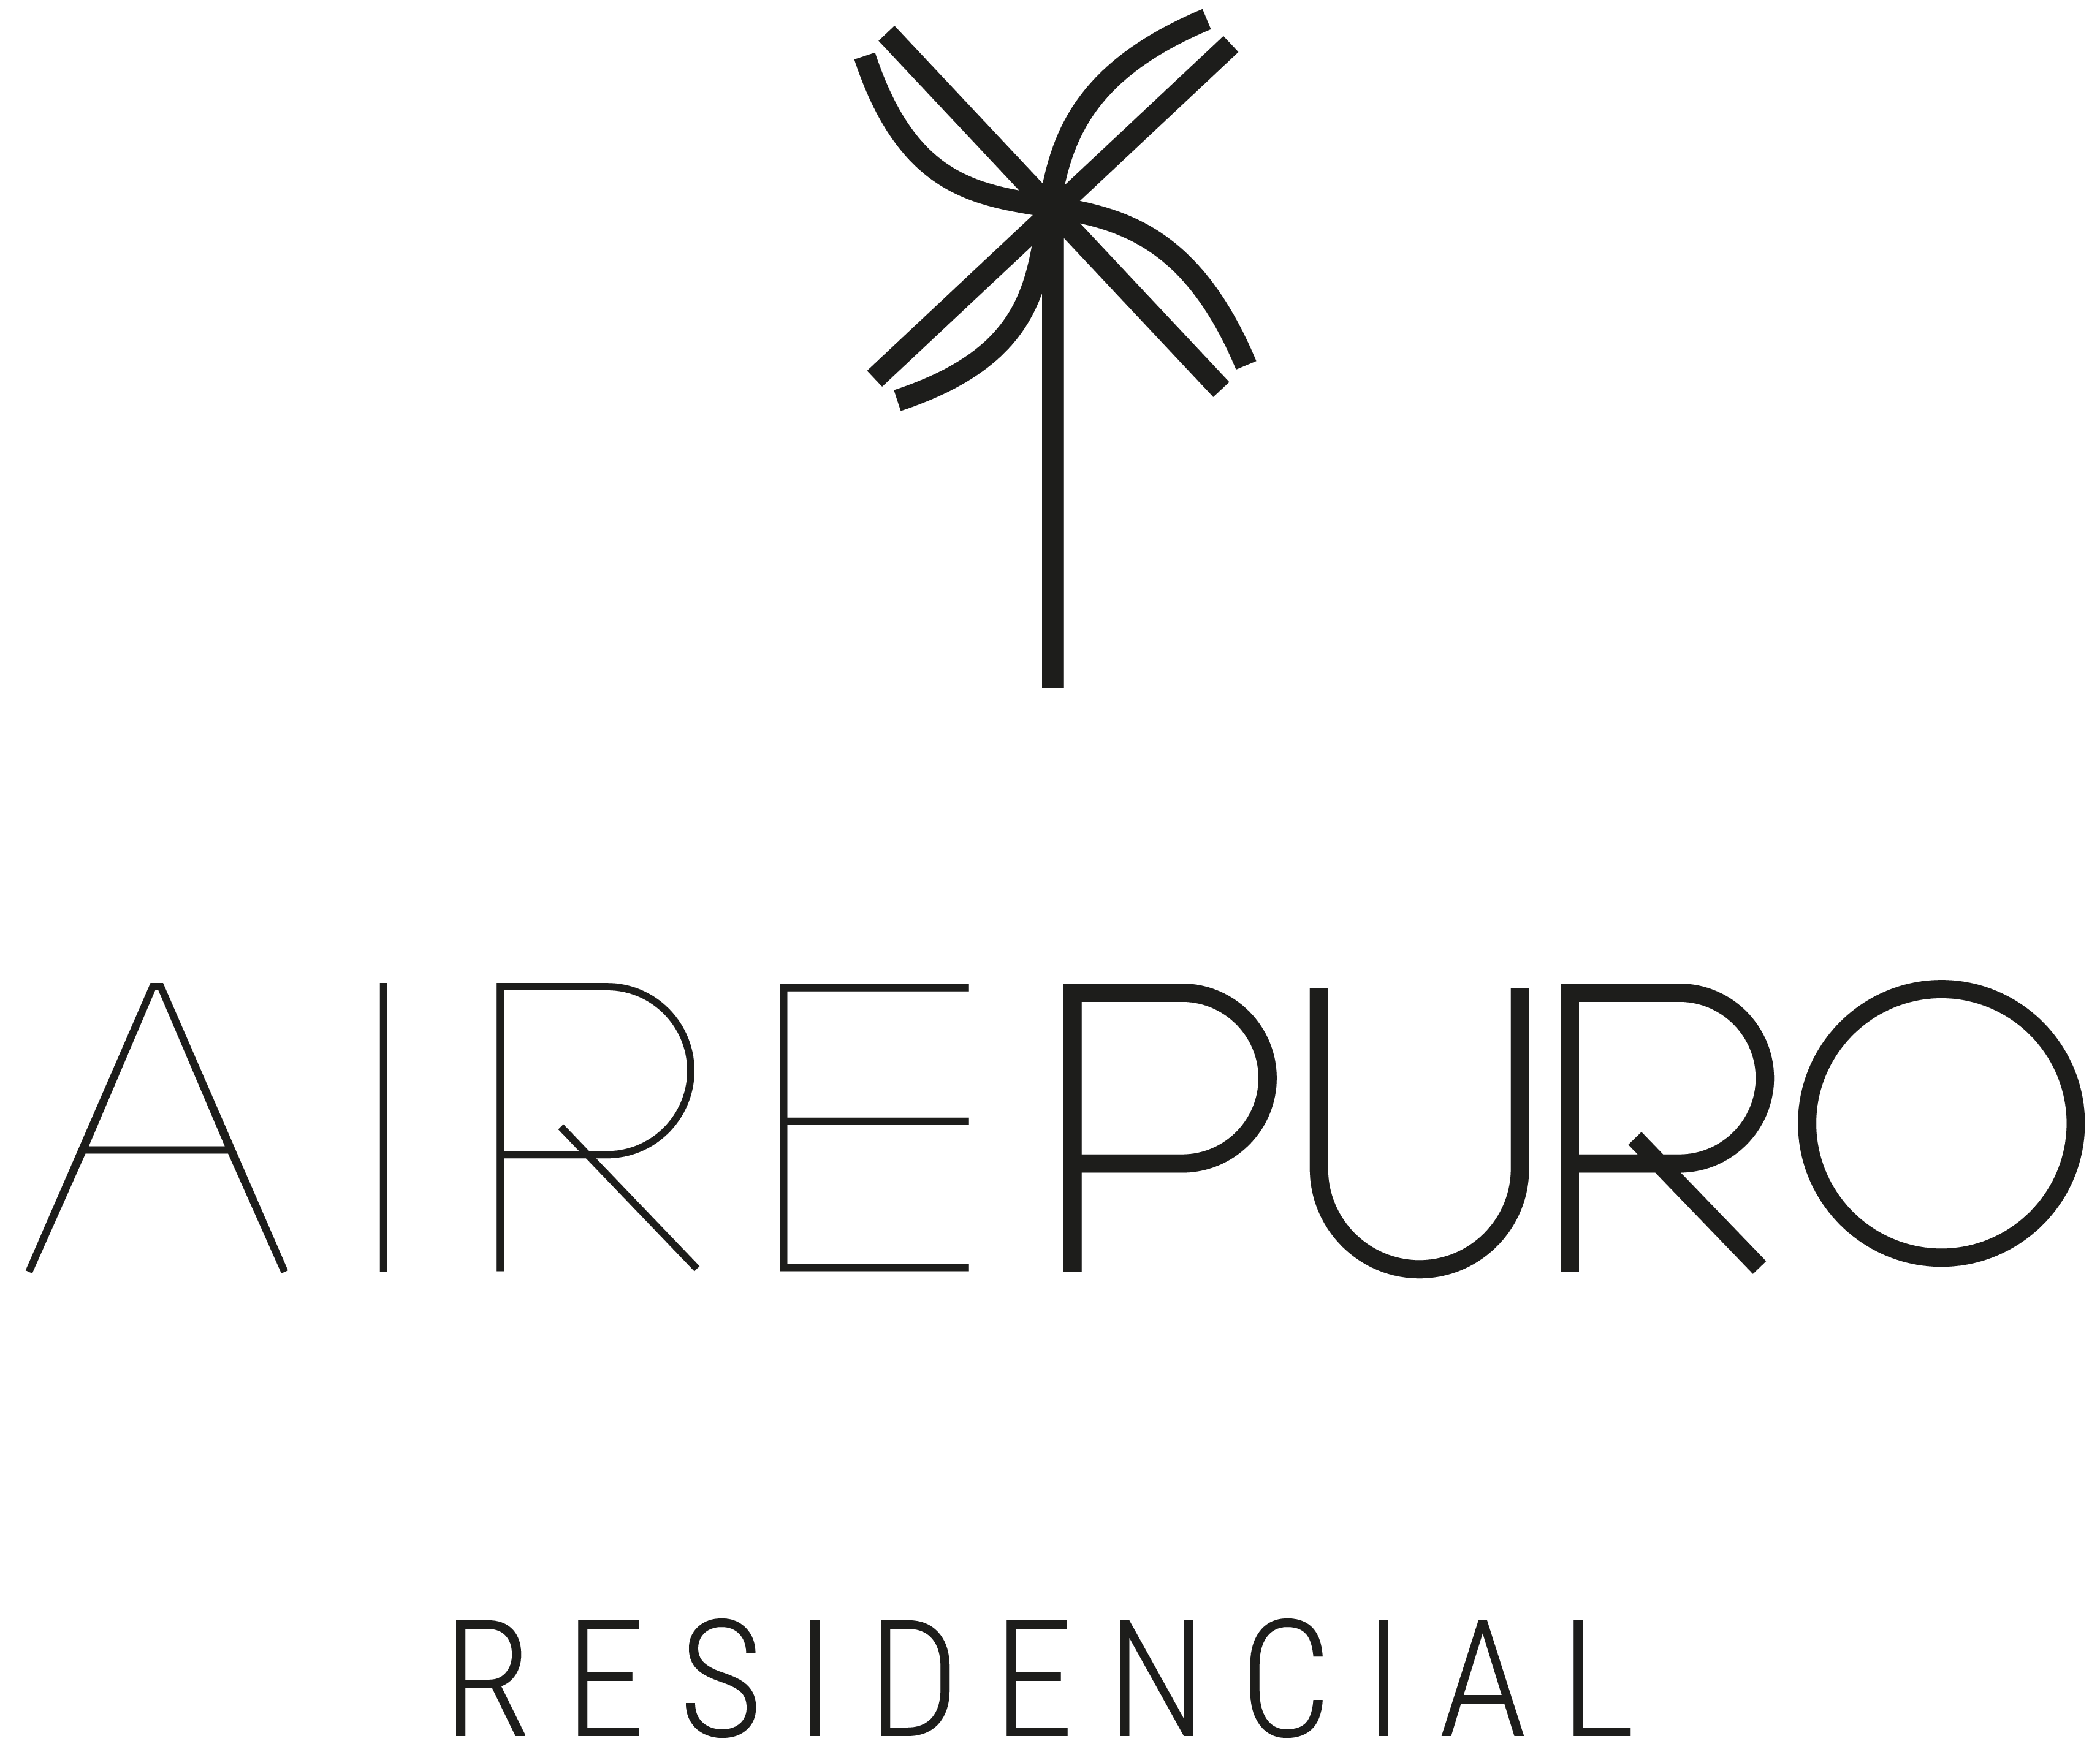 AirePuro Residencial